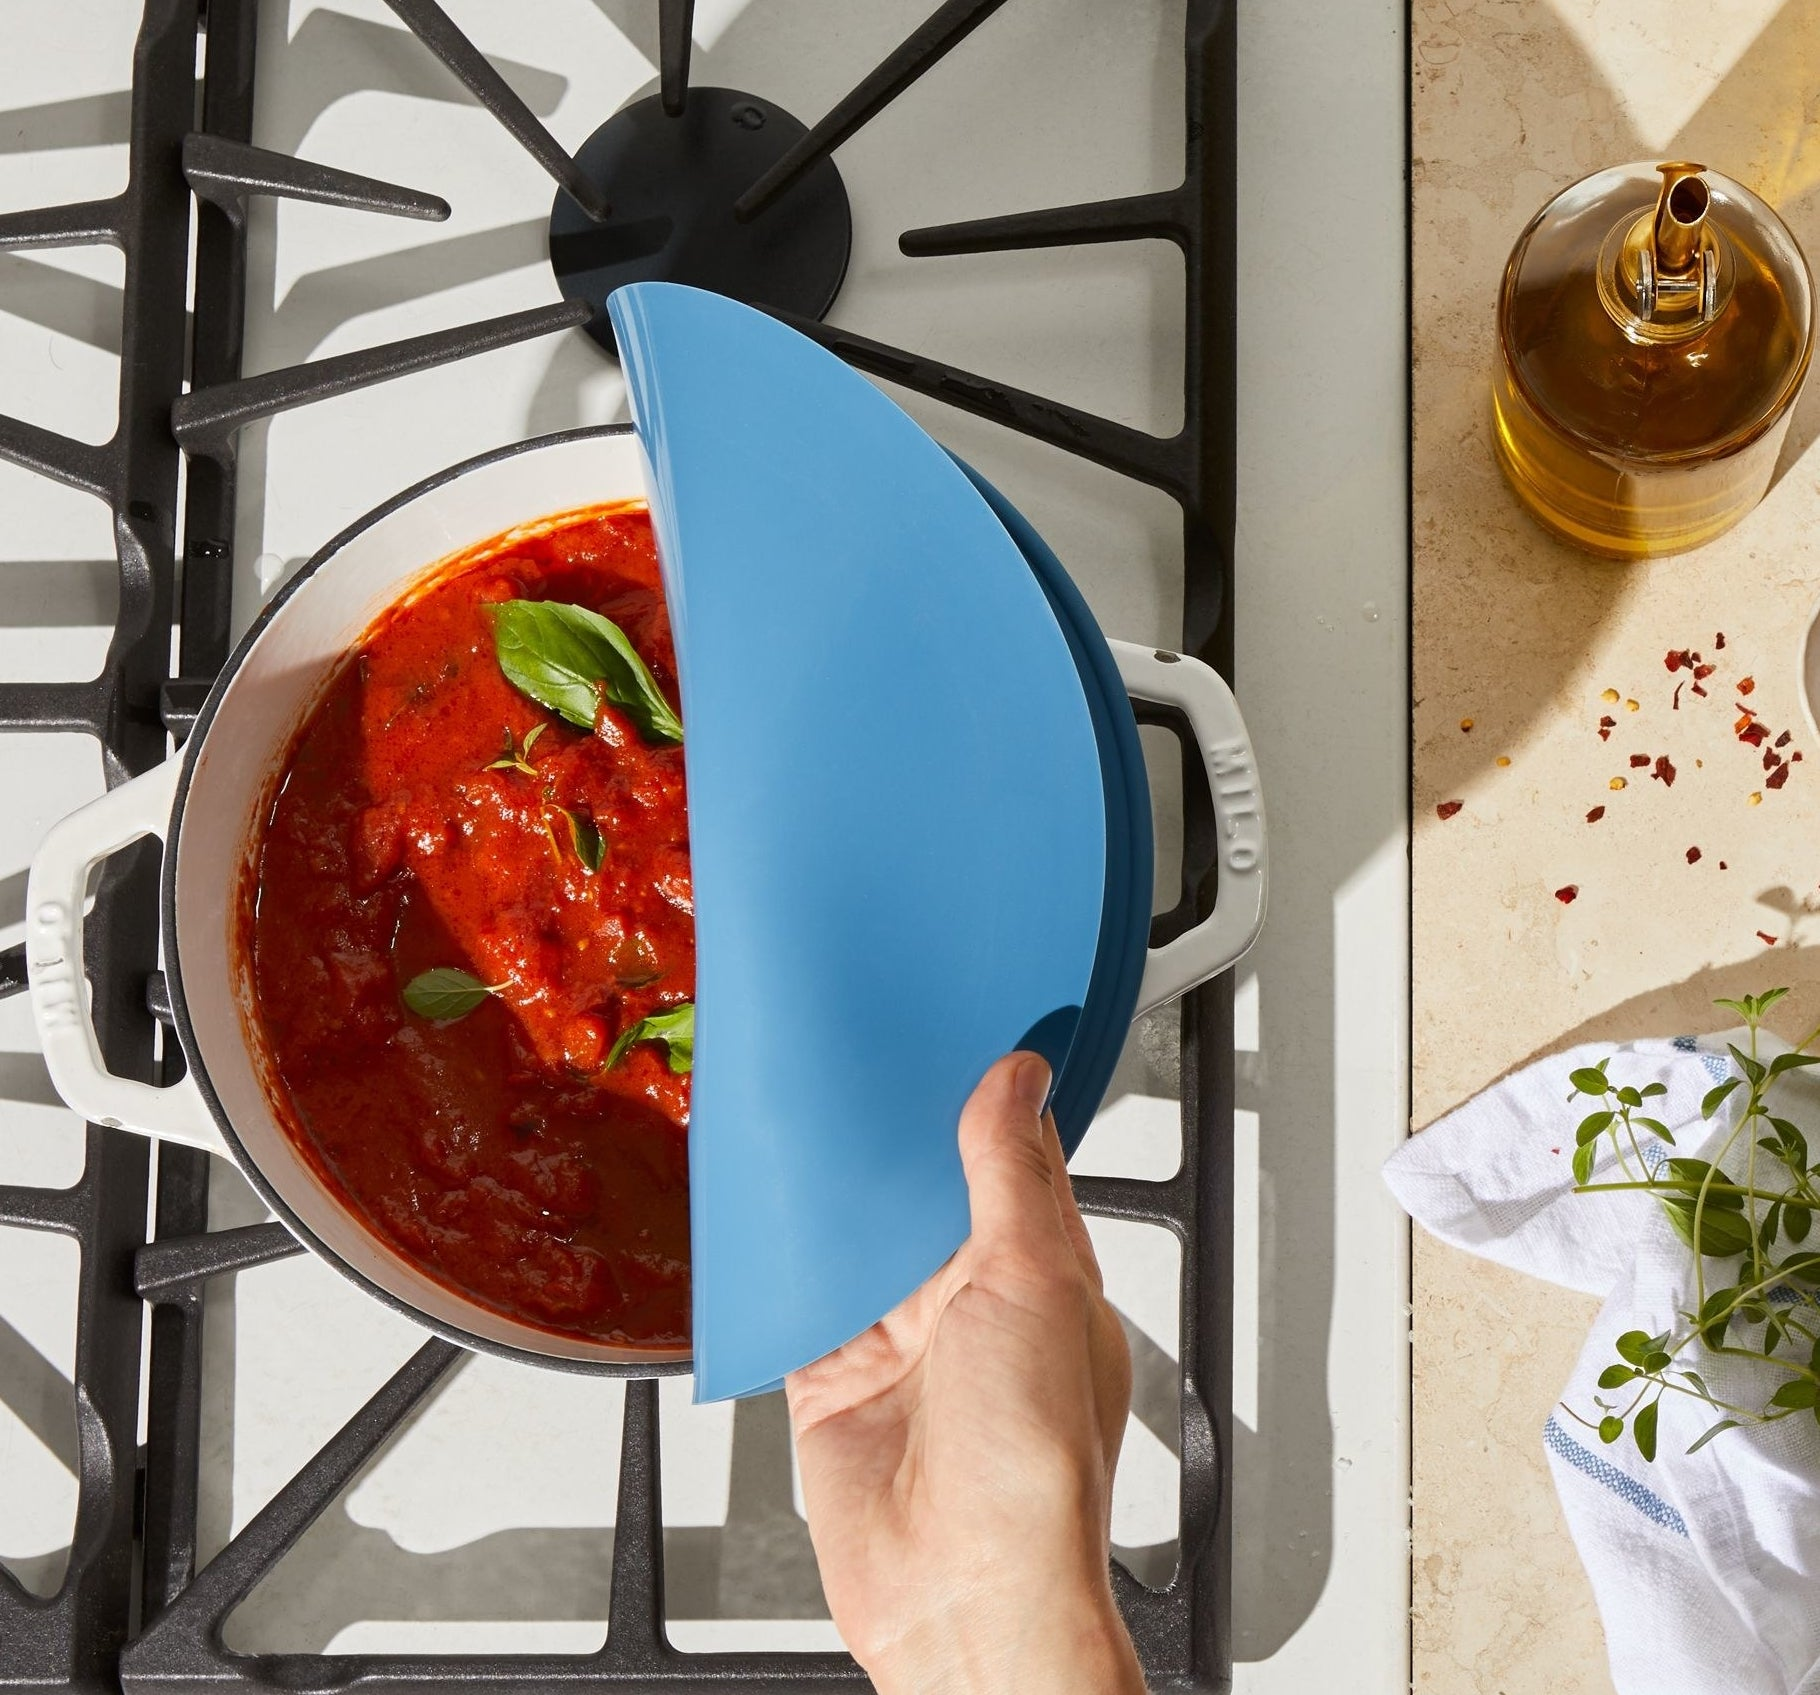 large blue lid on a dutch oven on the stove bent back to reveal tomato sauce